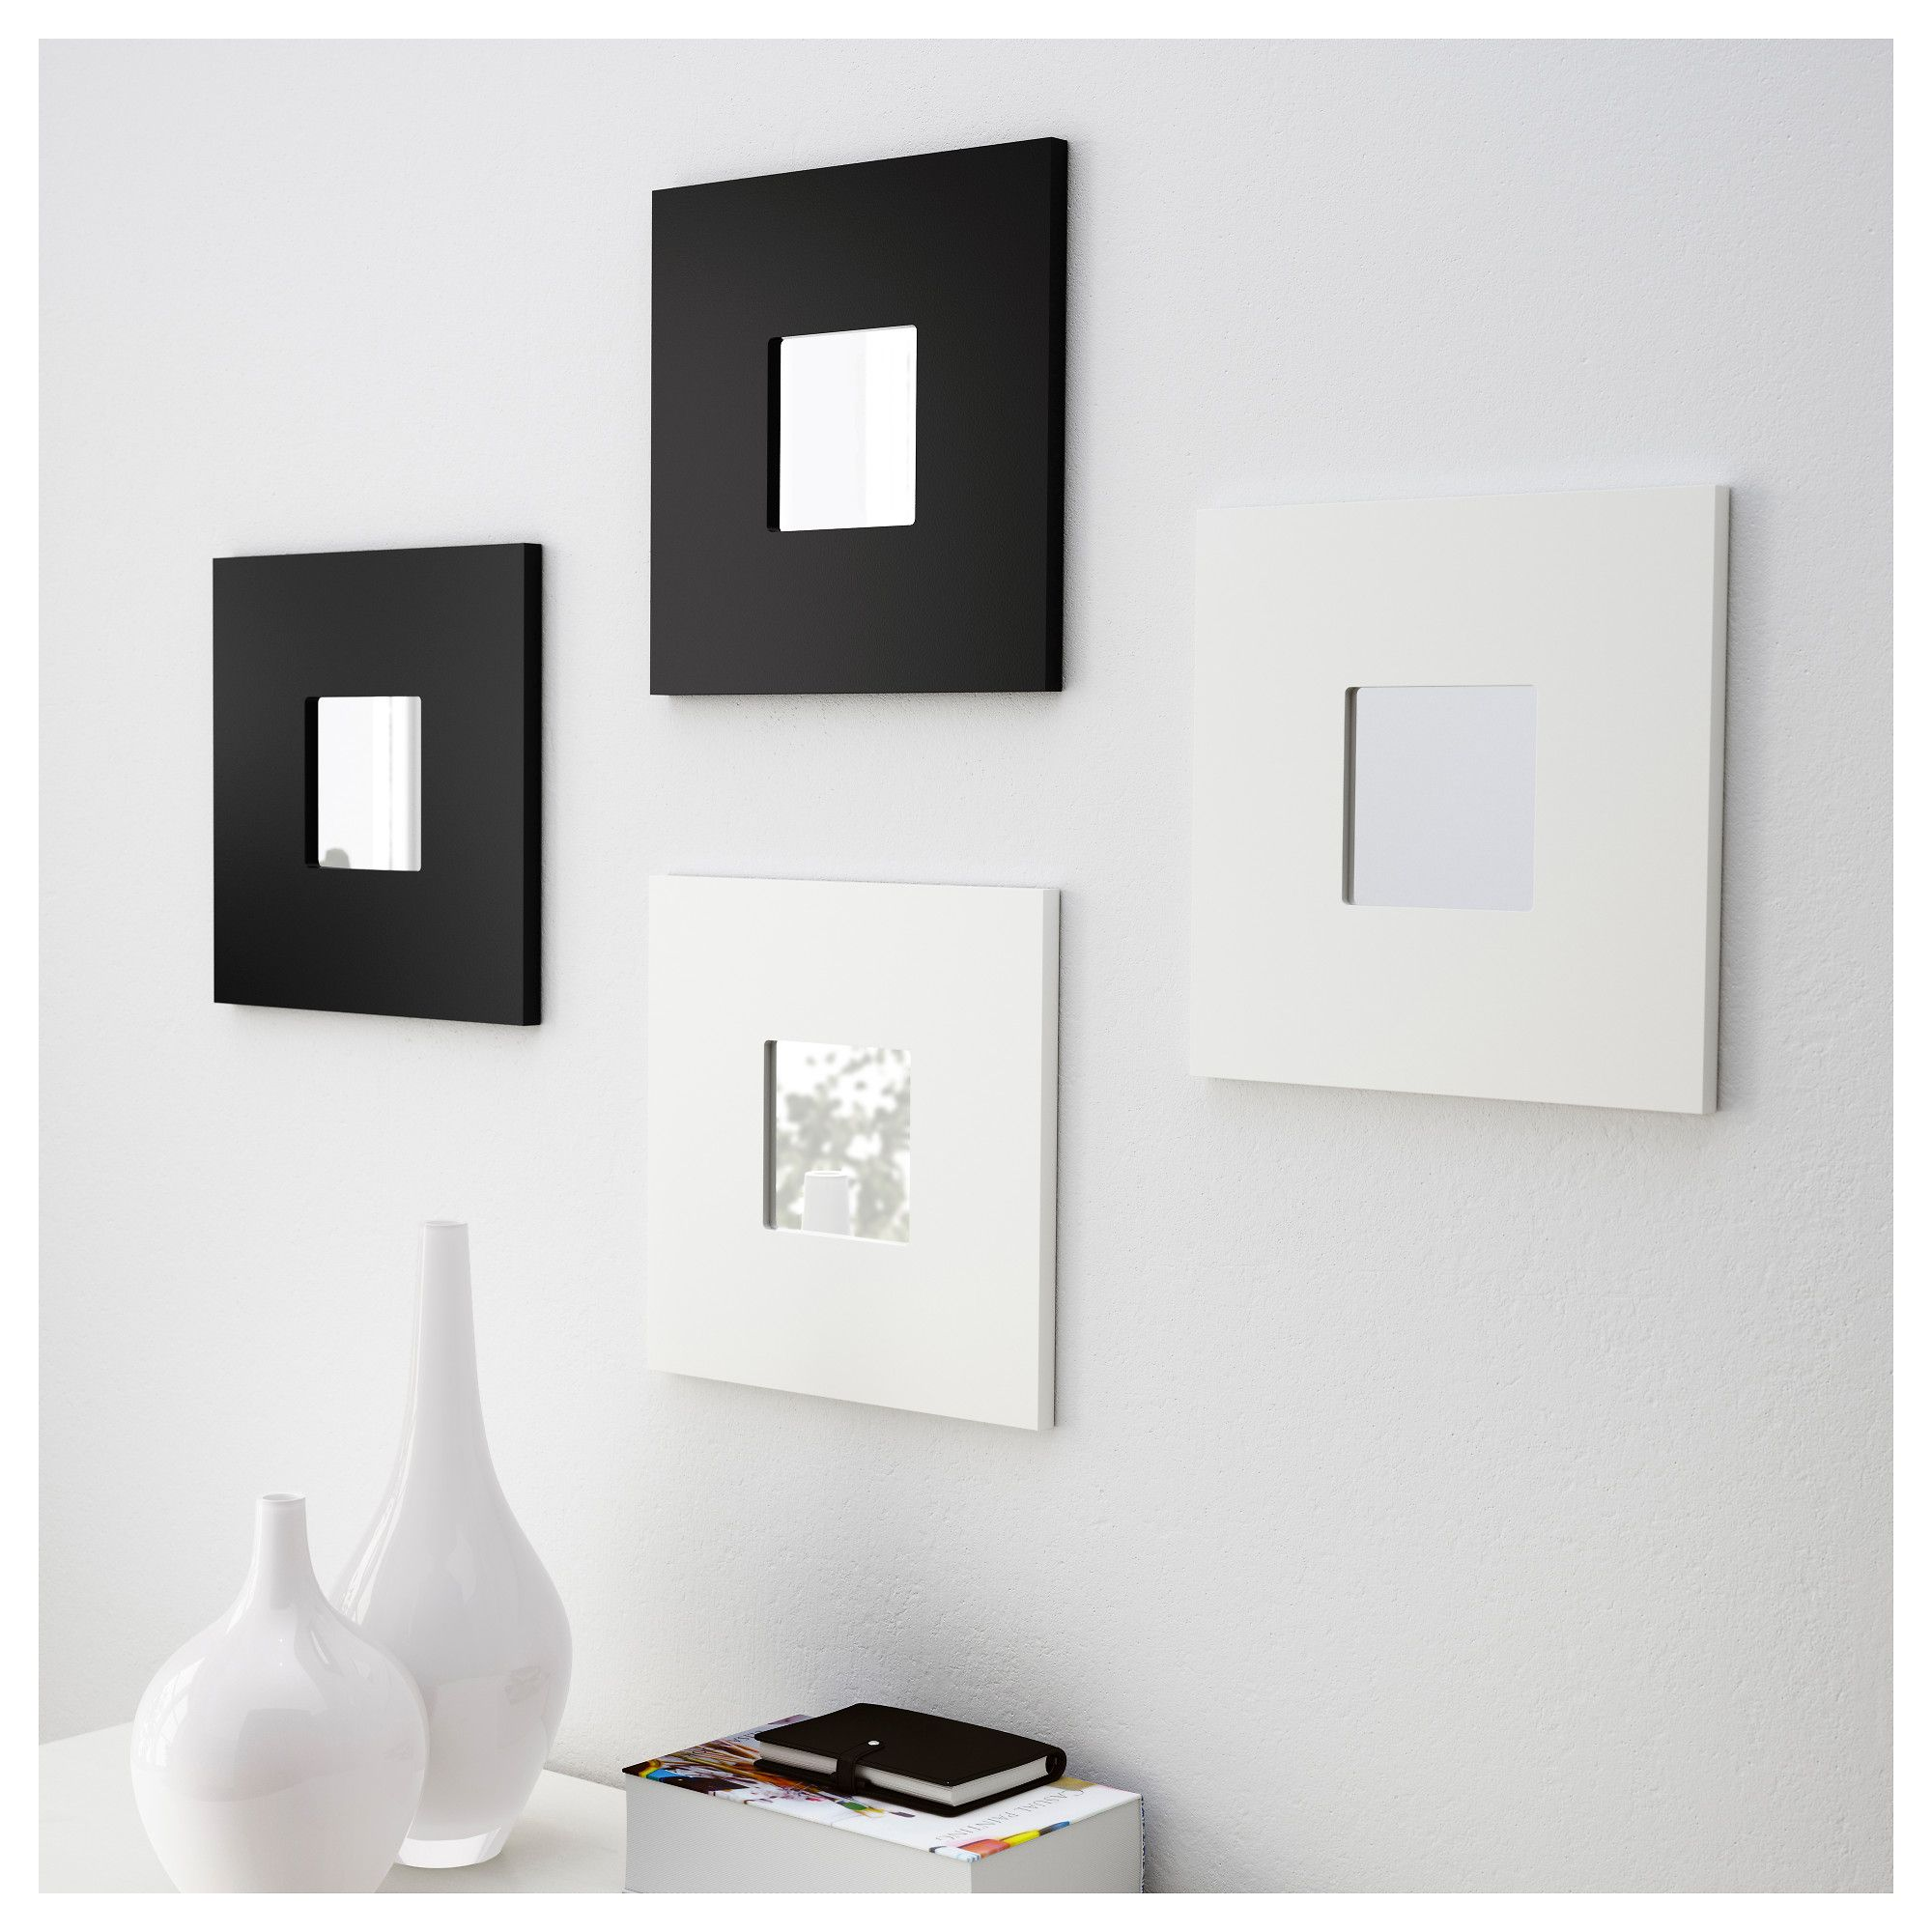 Ikea malma mirror black mejores ideas pinterest ikea hack